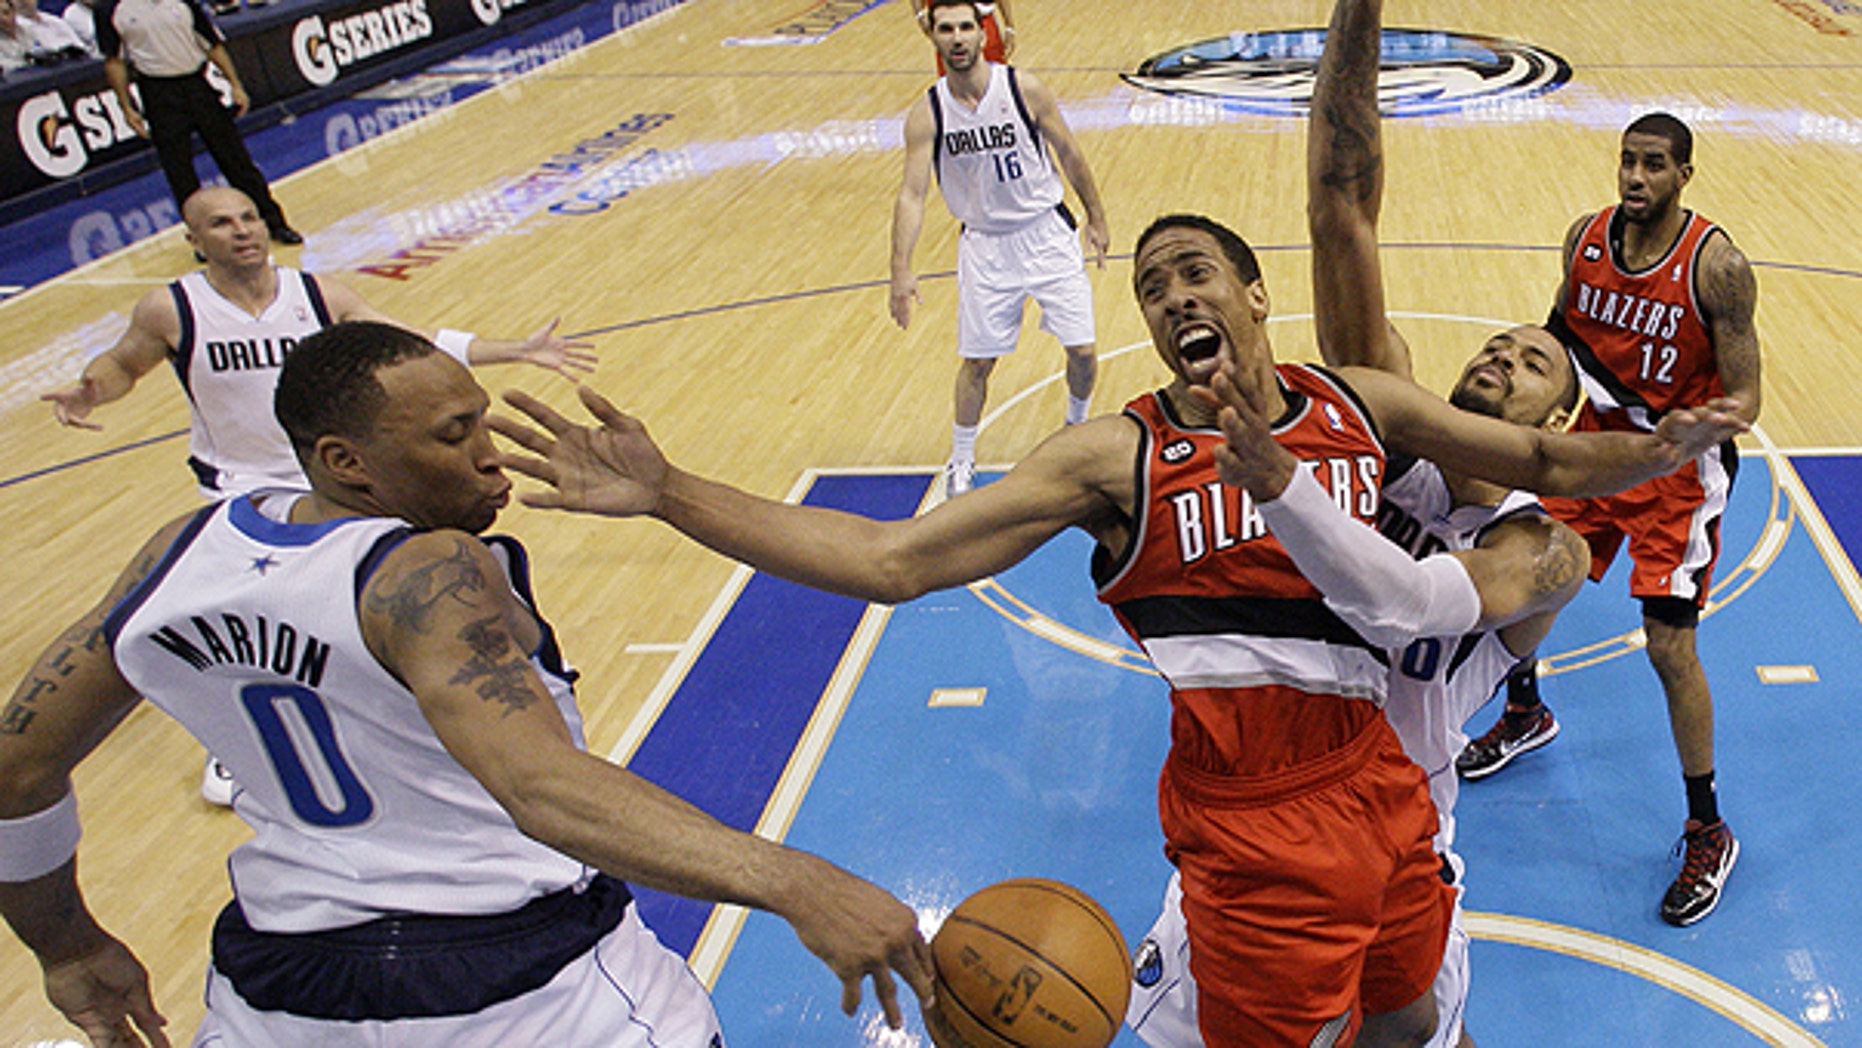 April 19: Portland Trail Blazers' Andre Miller, center, loses control of the ball going to the basket against Dallas Mavericks' Shawn Marion (0) and Tyson Chandler, right, in the second half of an NBA basketball game in Dallas.